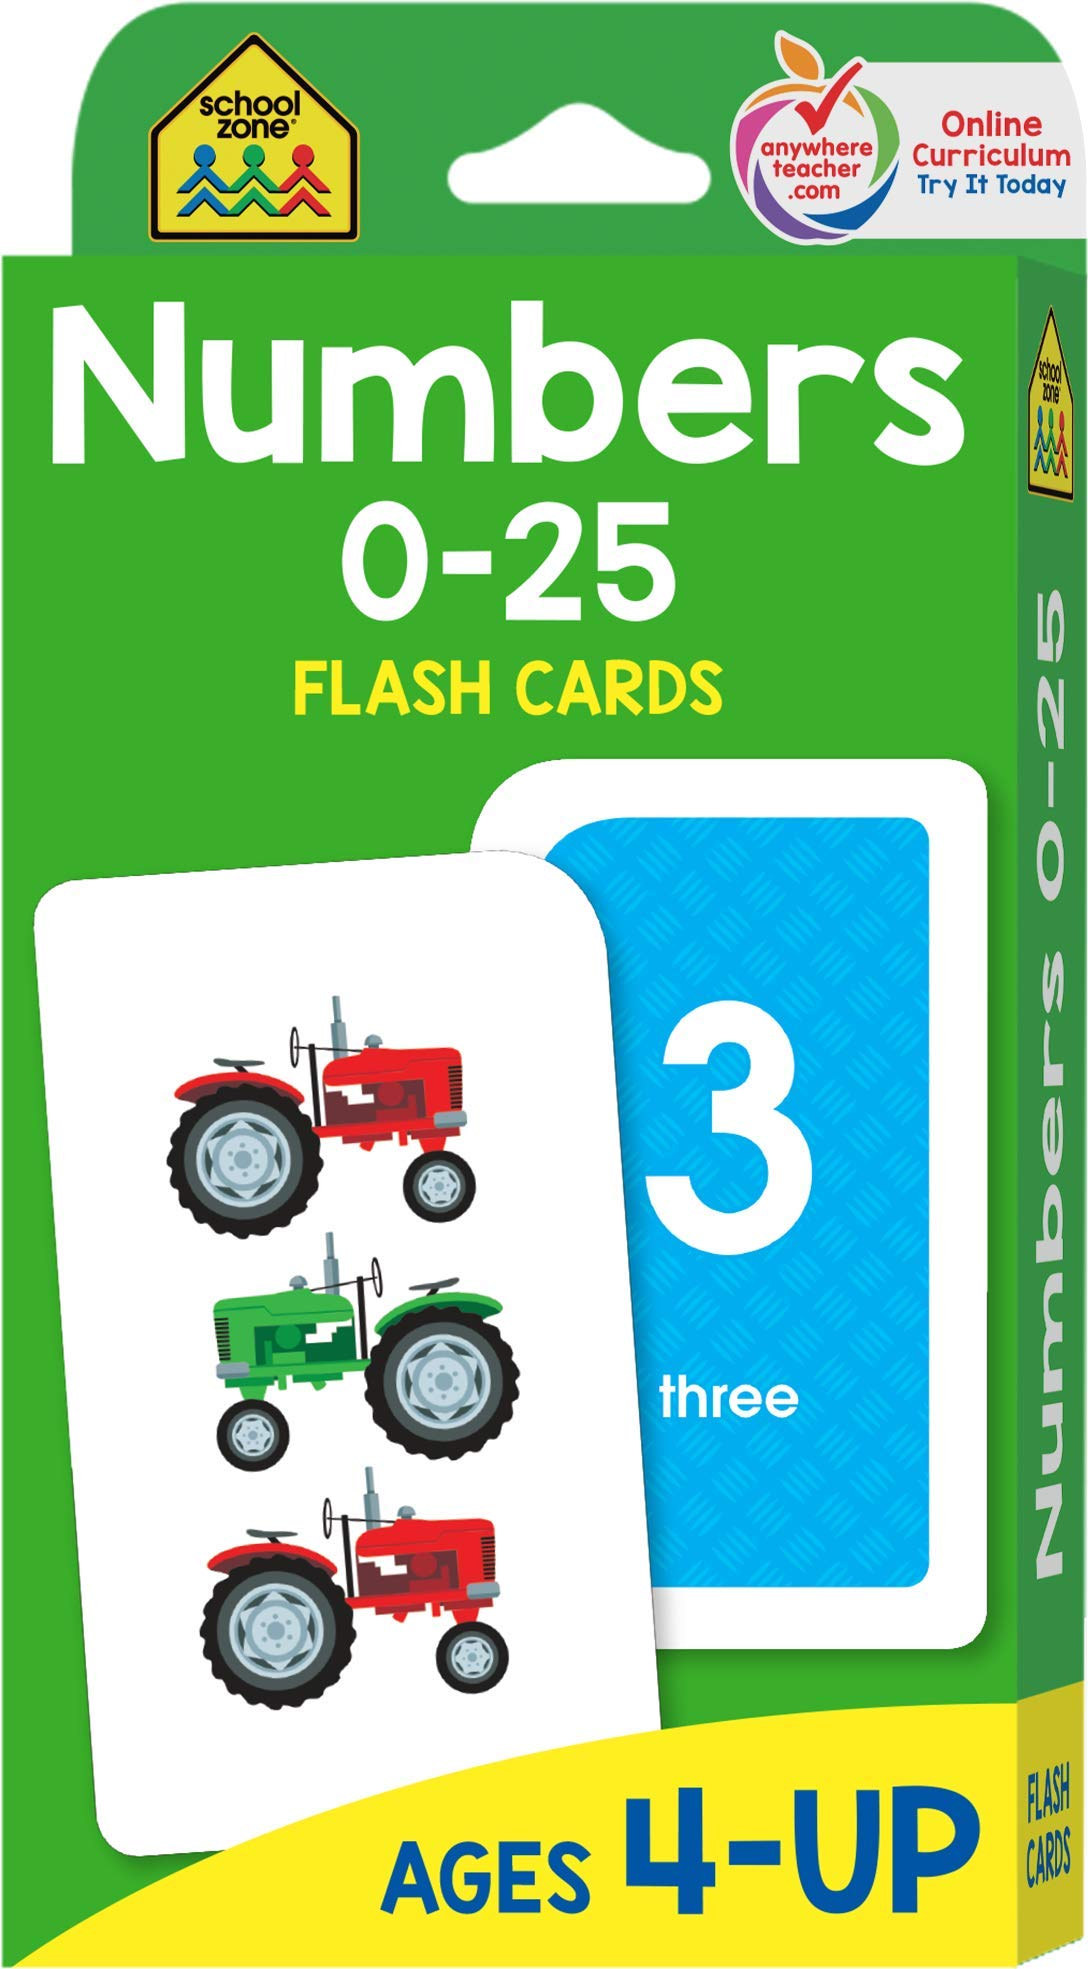 School Zone - Numbers 0-25 Flash Cards - Ages 4 to 6